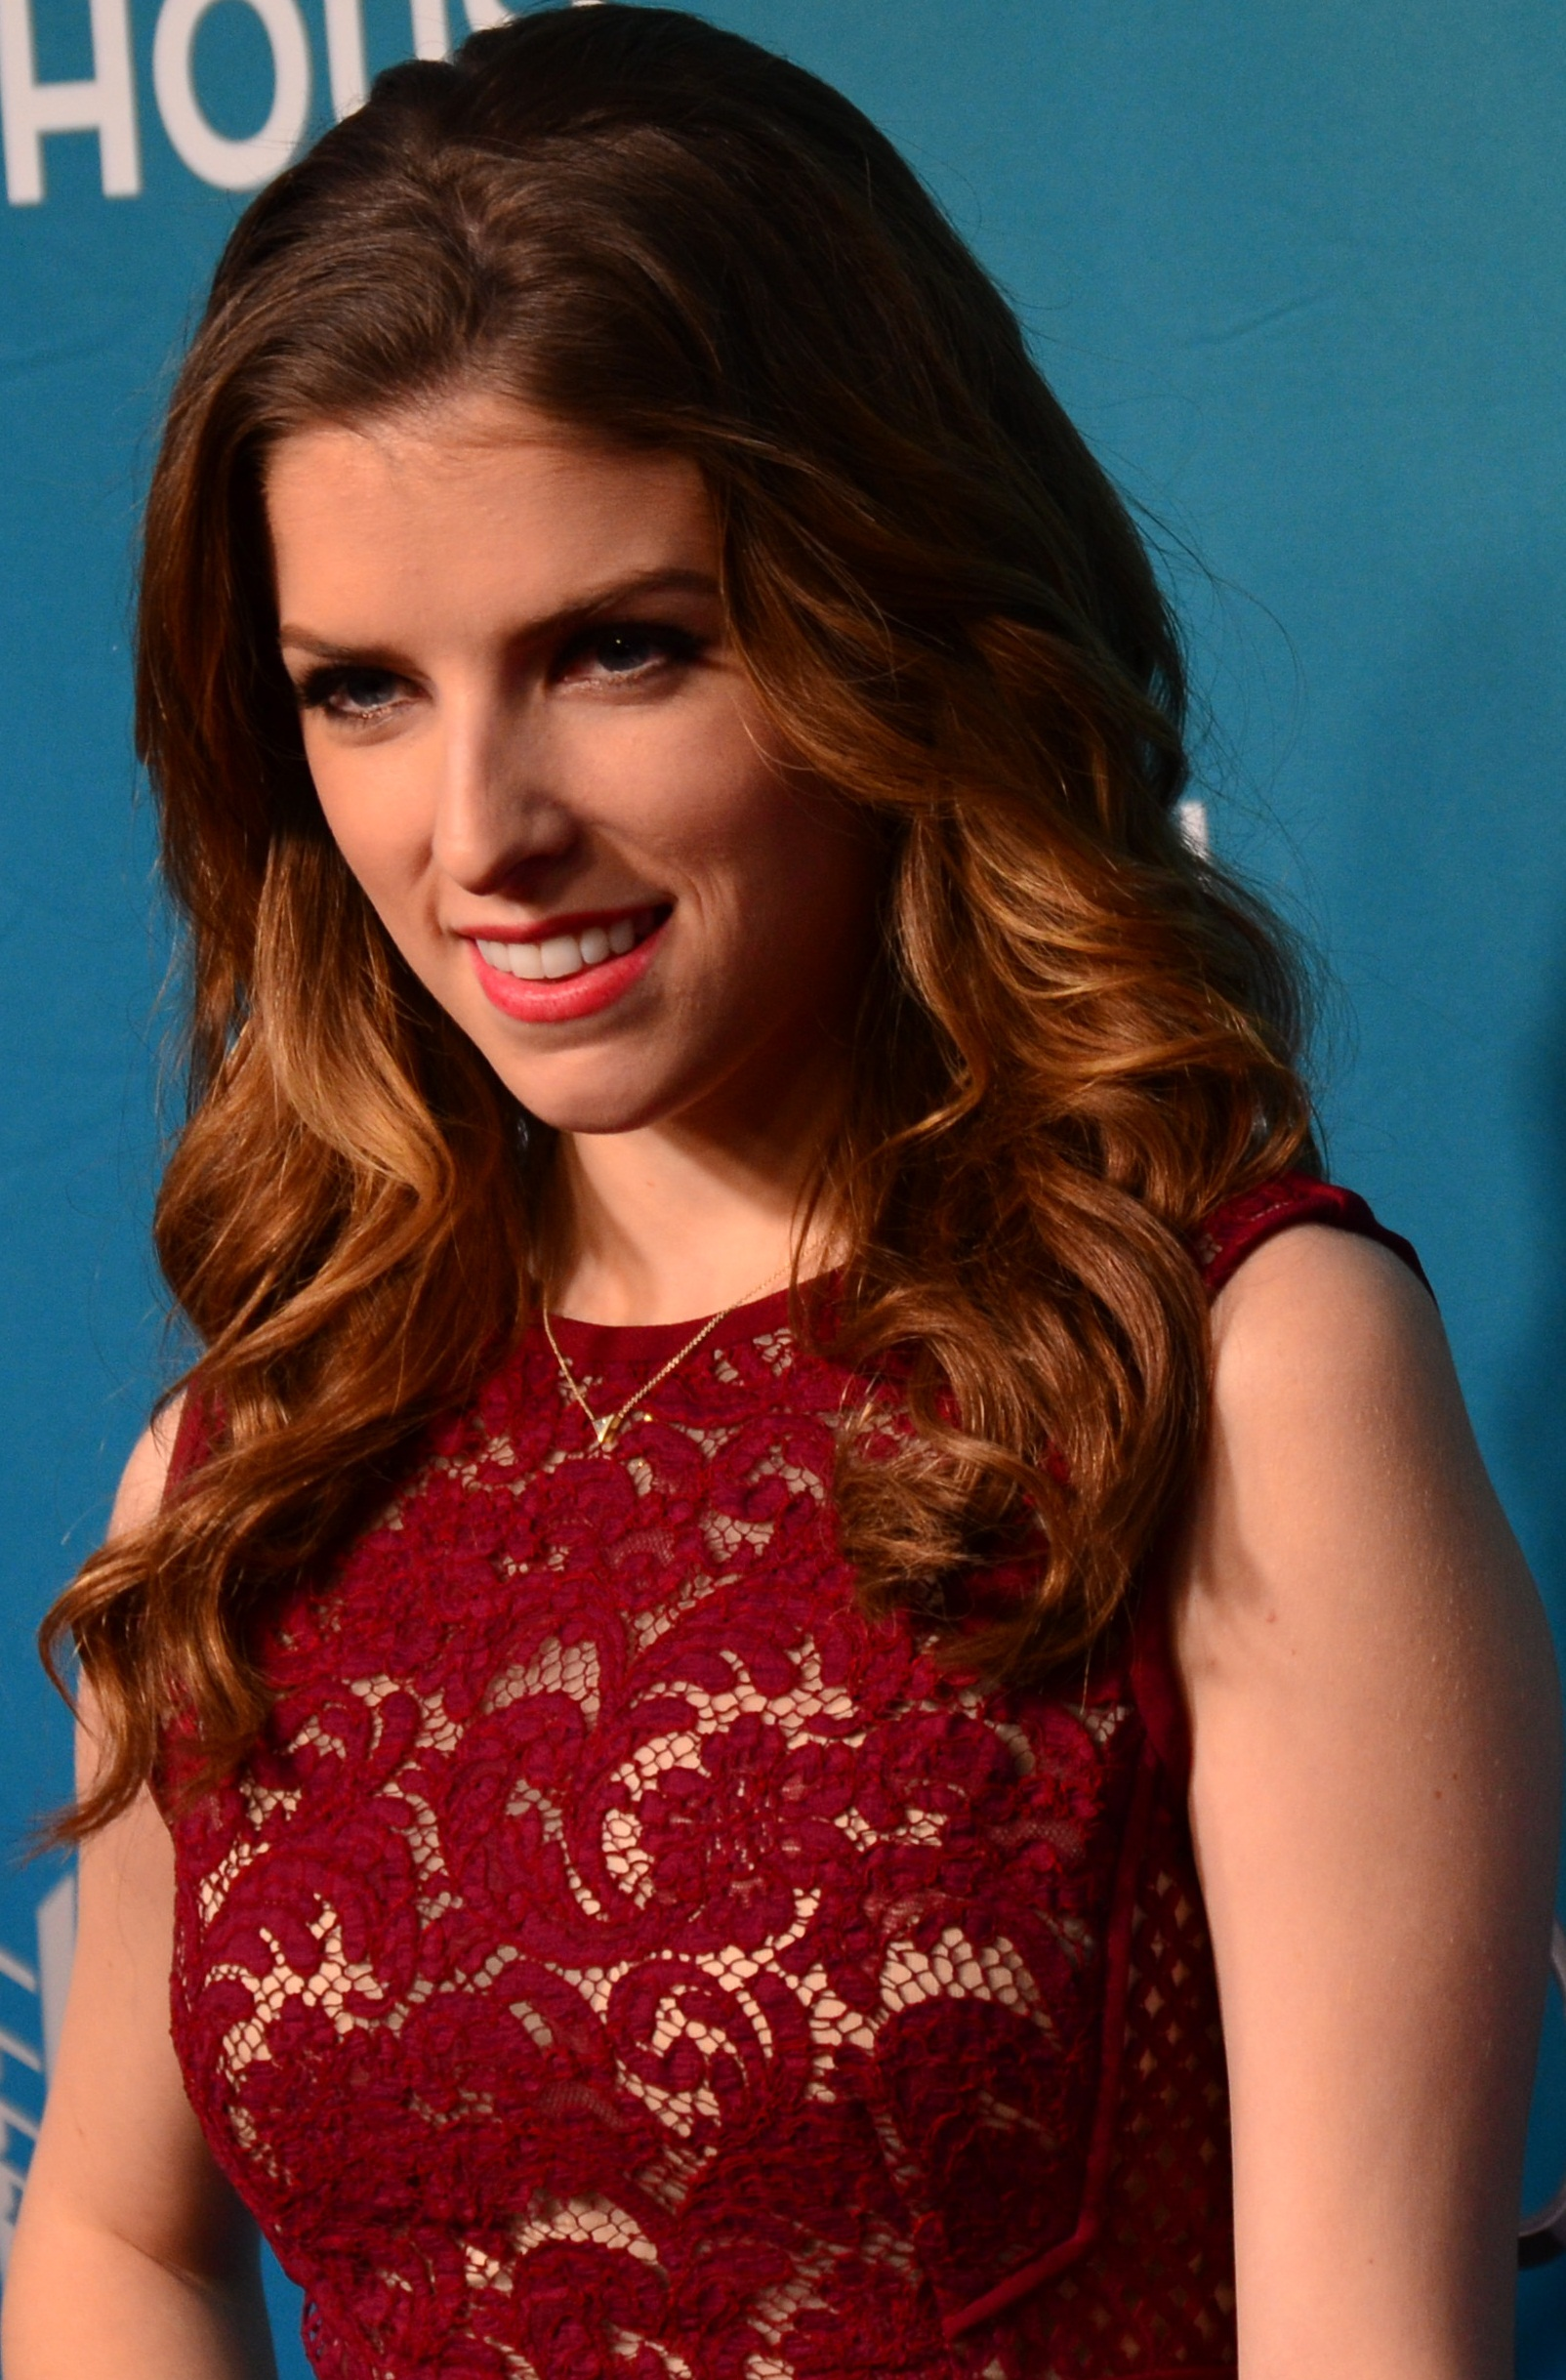 The 32-year old daughter of father William Kendrick and mother Janice Kendrick, 157 cm tall Anna Kendrick in 2018 photo